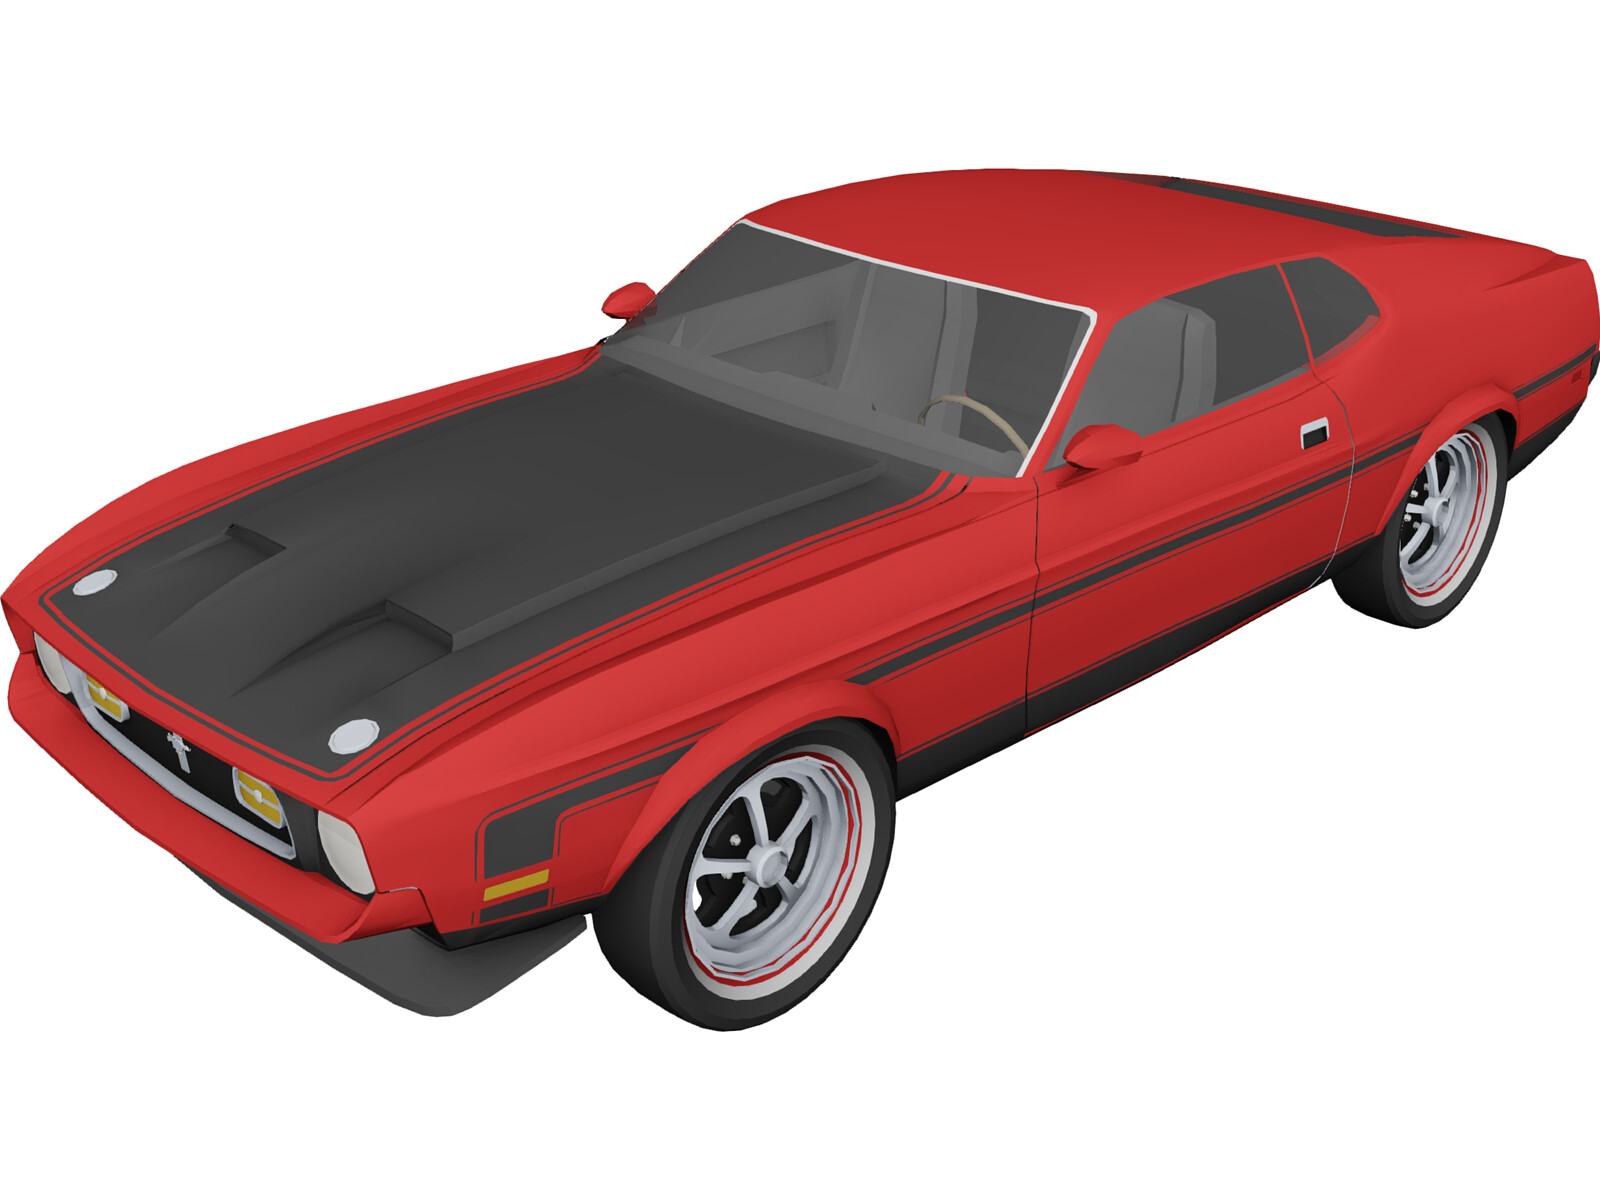 Ford Mustang Mach-1